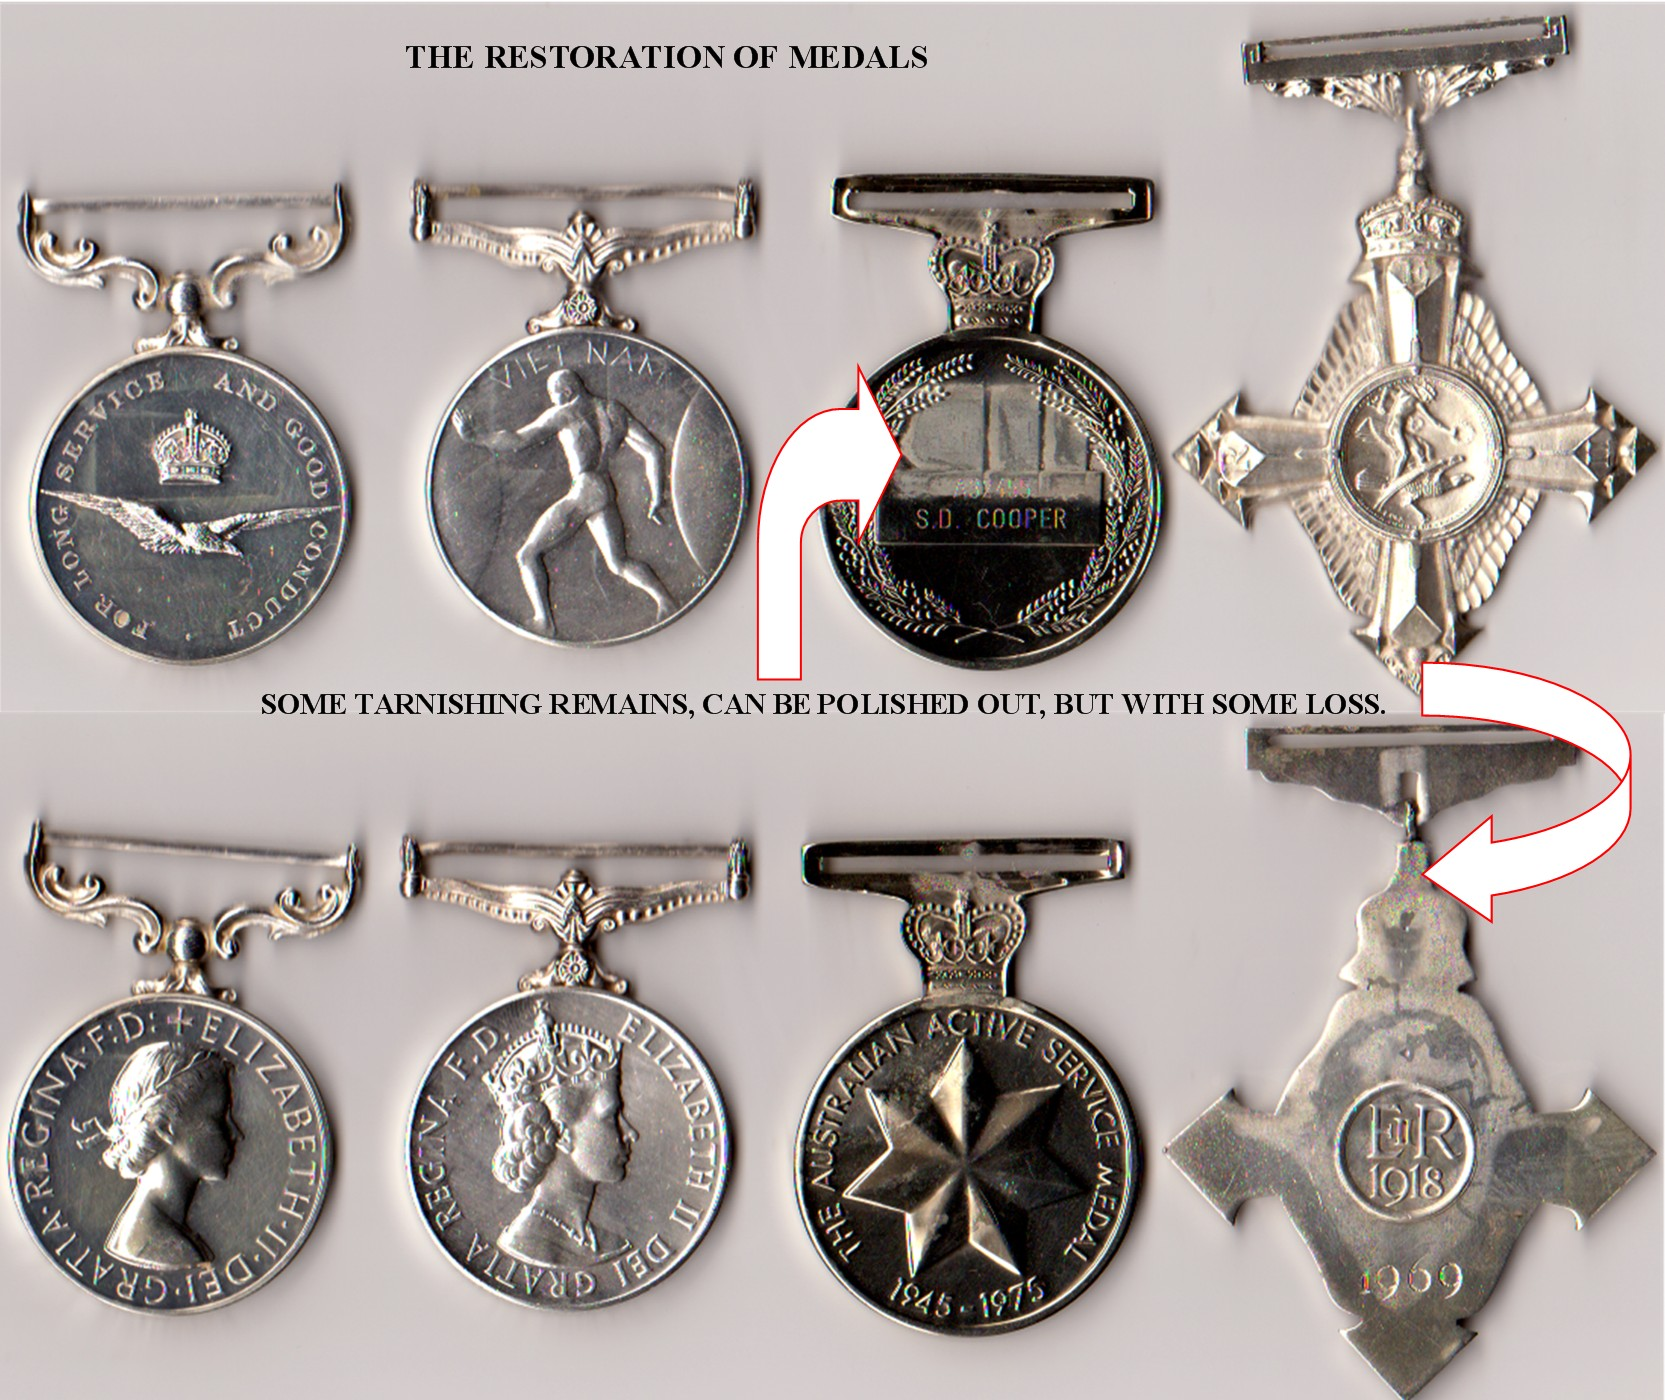 Medals after restoration